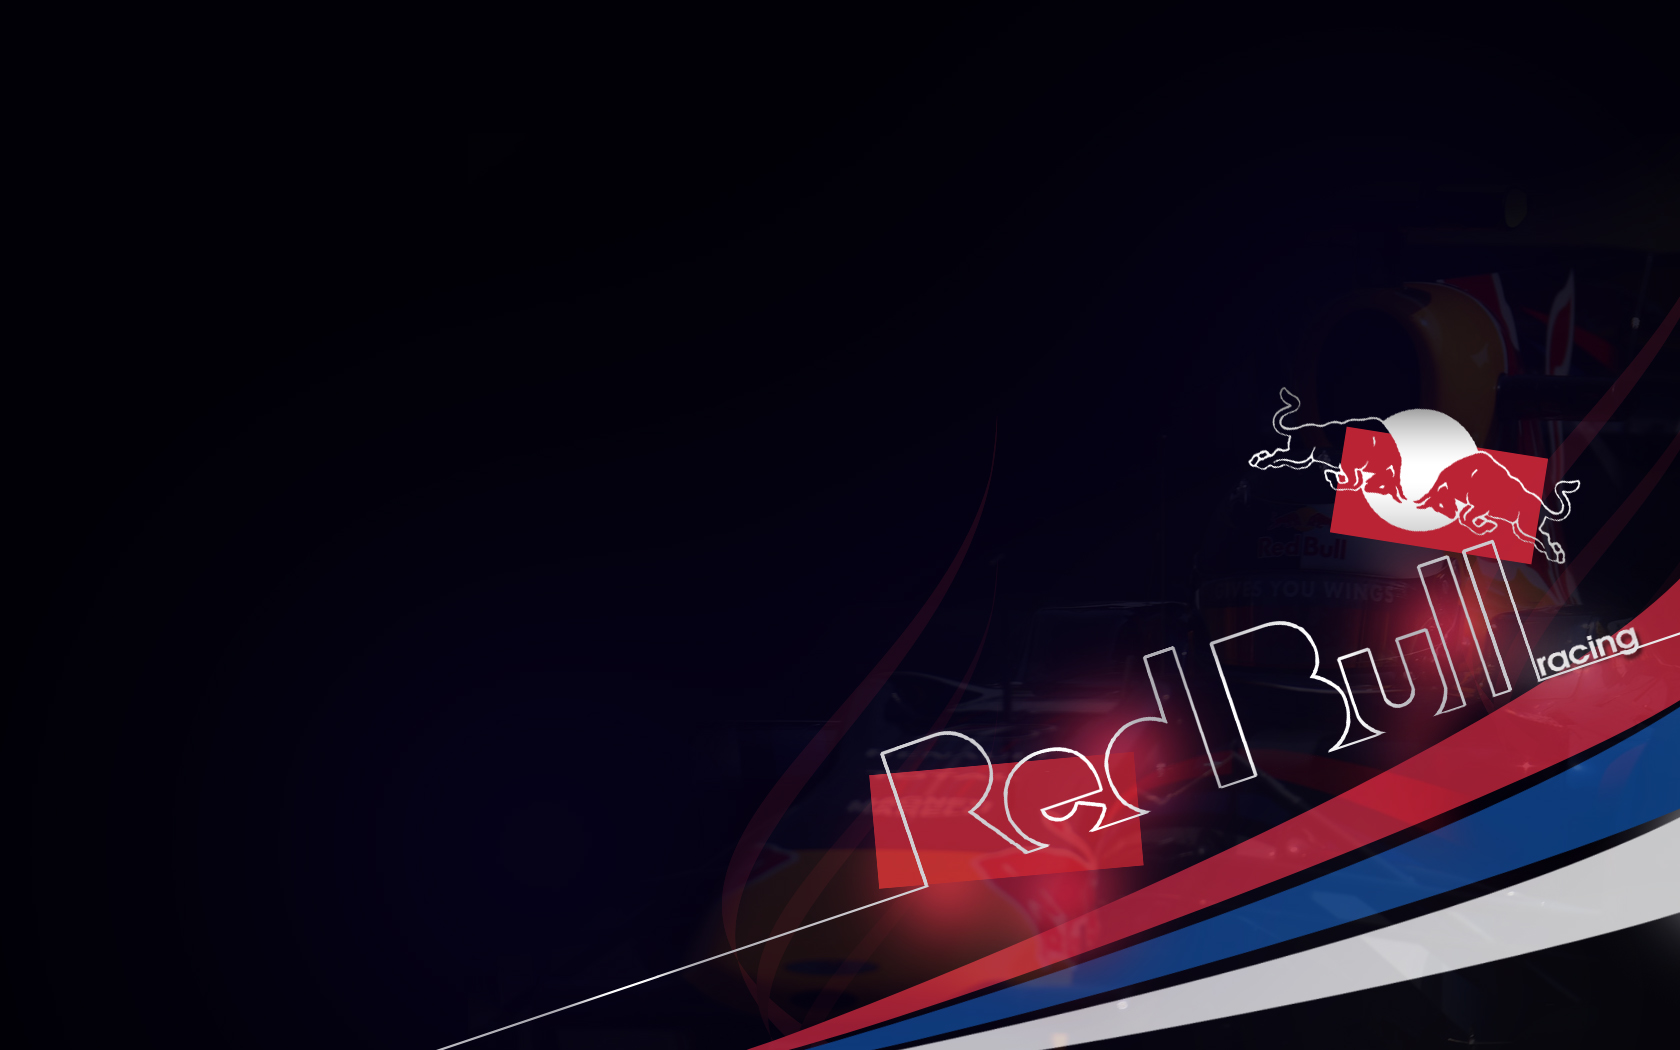 Cool Red Bull Wallpaper